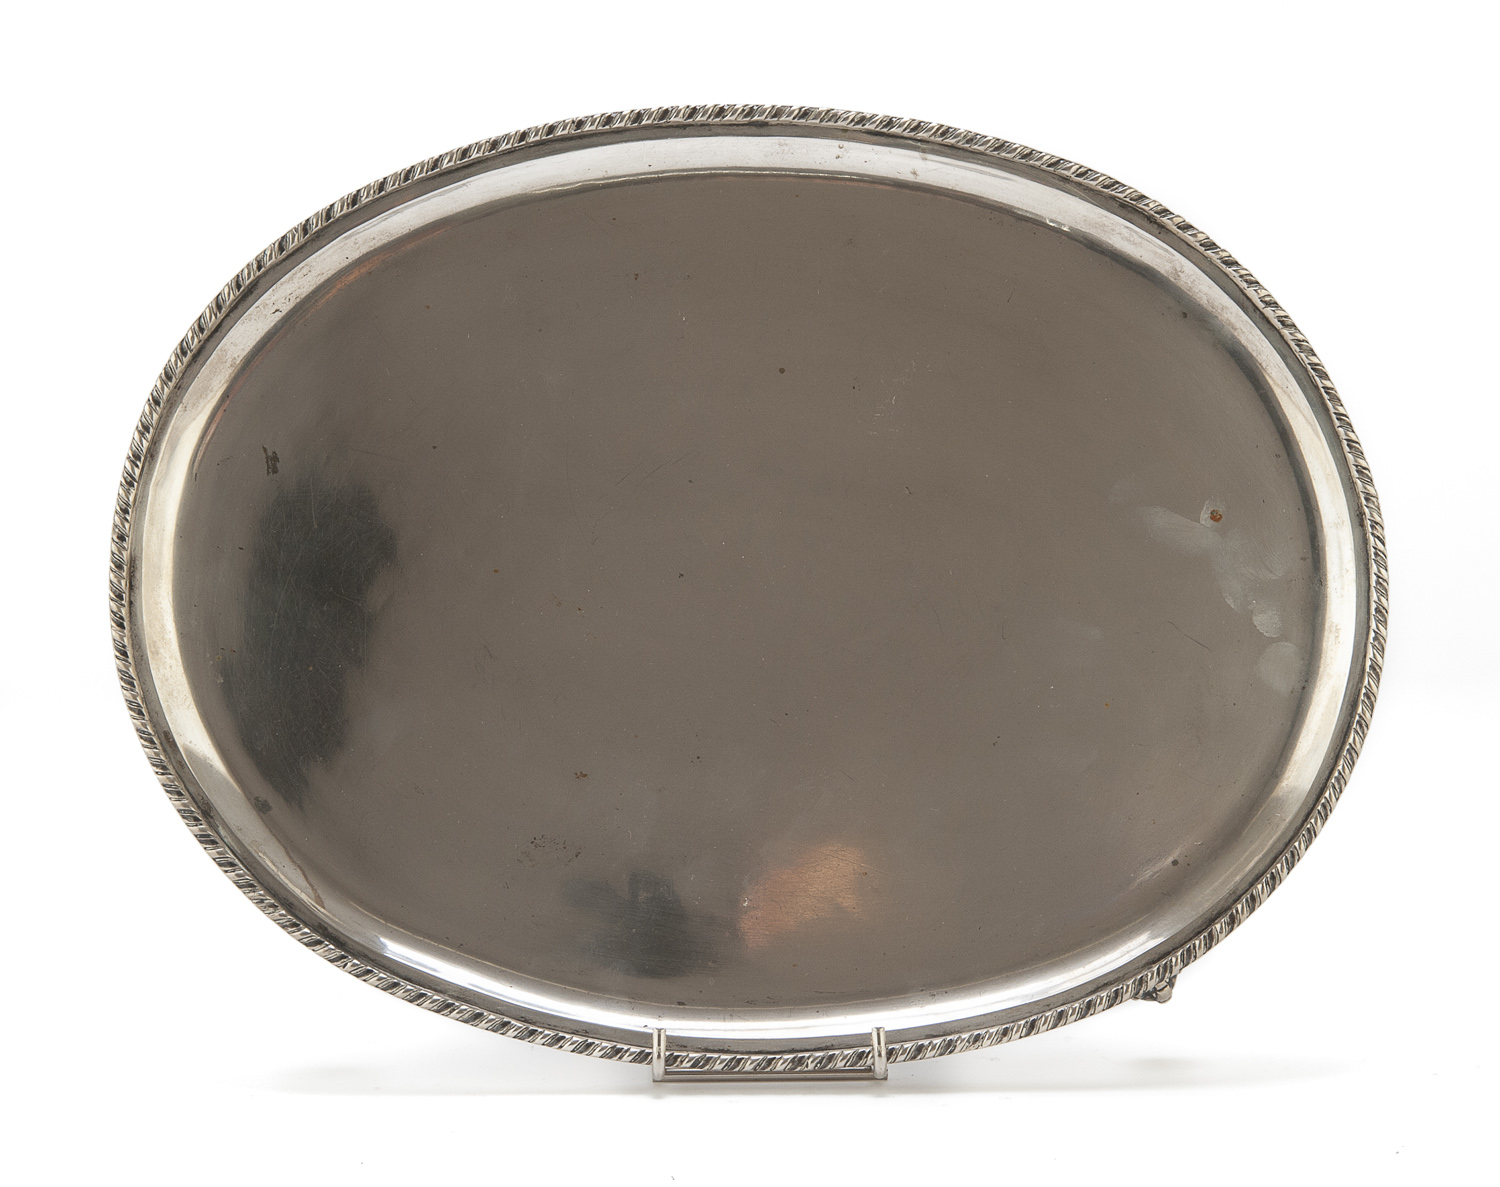 SILVER TRAY VICENZA LATE 19TH CENTURY